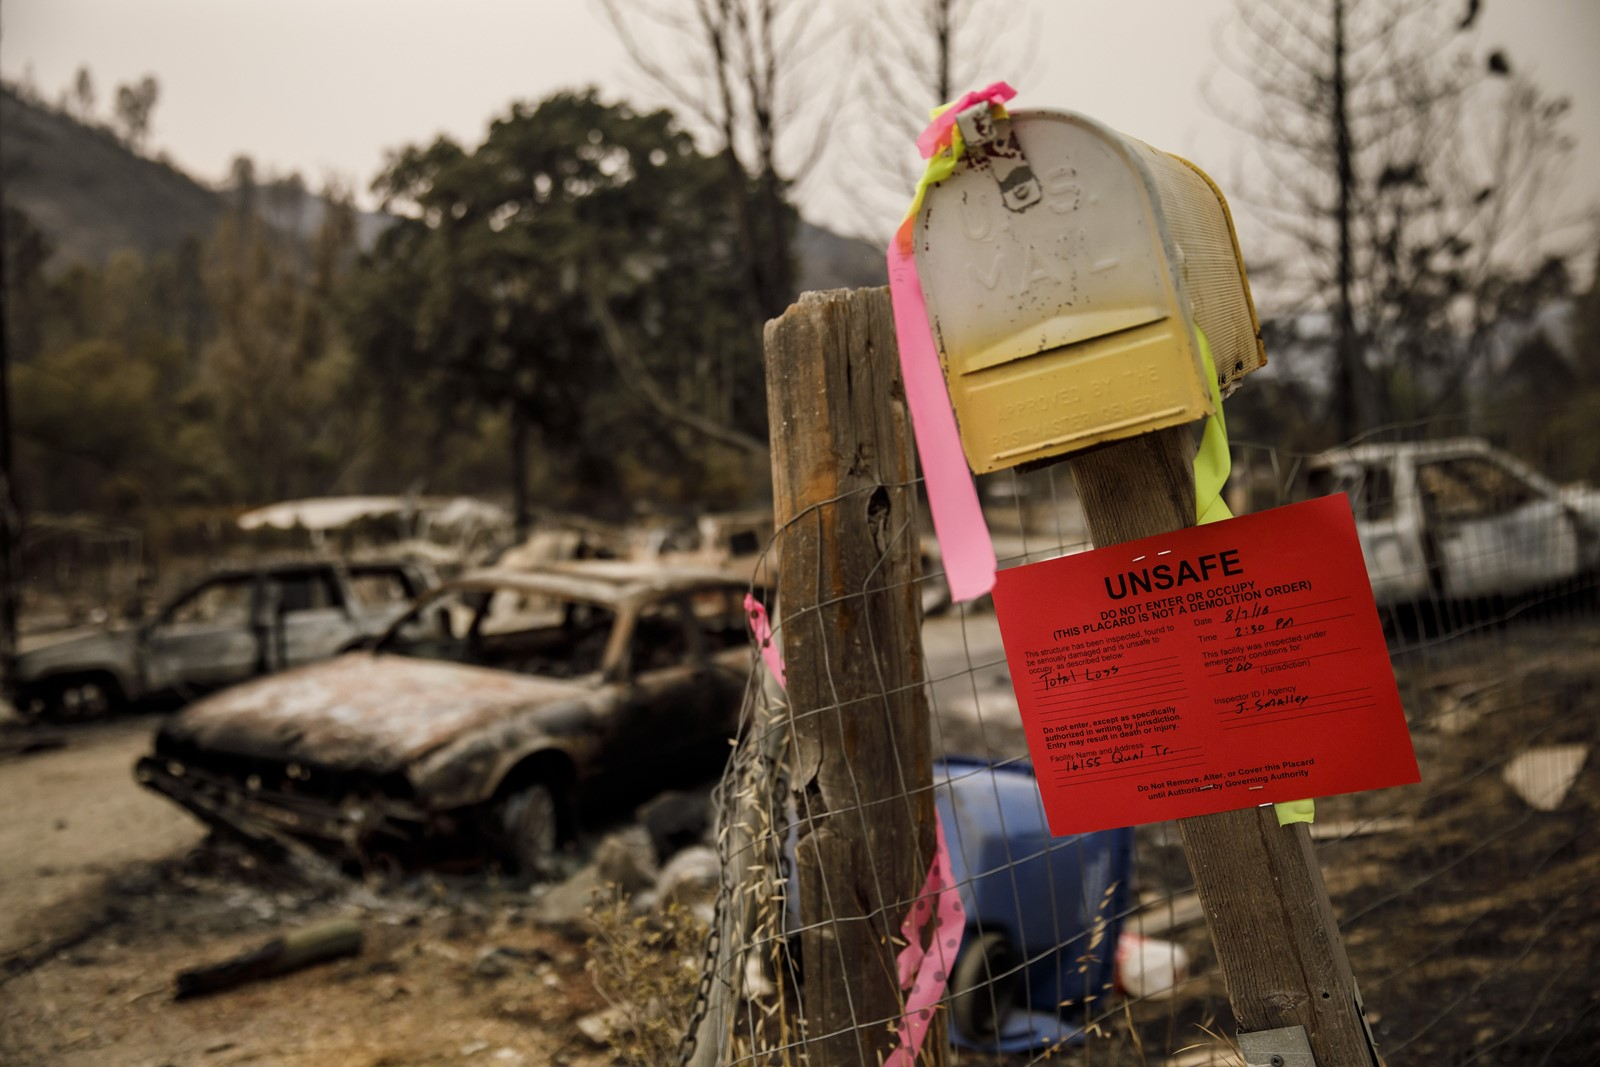 The Mendocino Complex fire has destroyed nearly 100 structures. Across the state, 619,000 acres have been scorched and 36,000 residents remain displaced. — Photograph: Marcus Yam/Los Angeles Times.